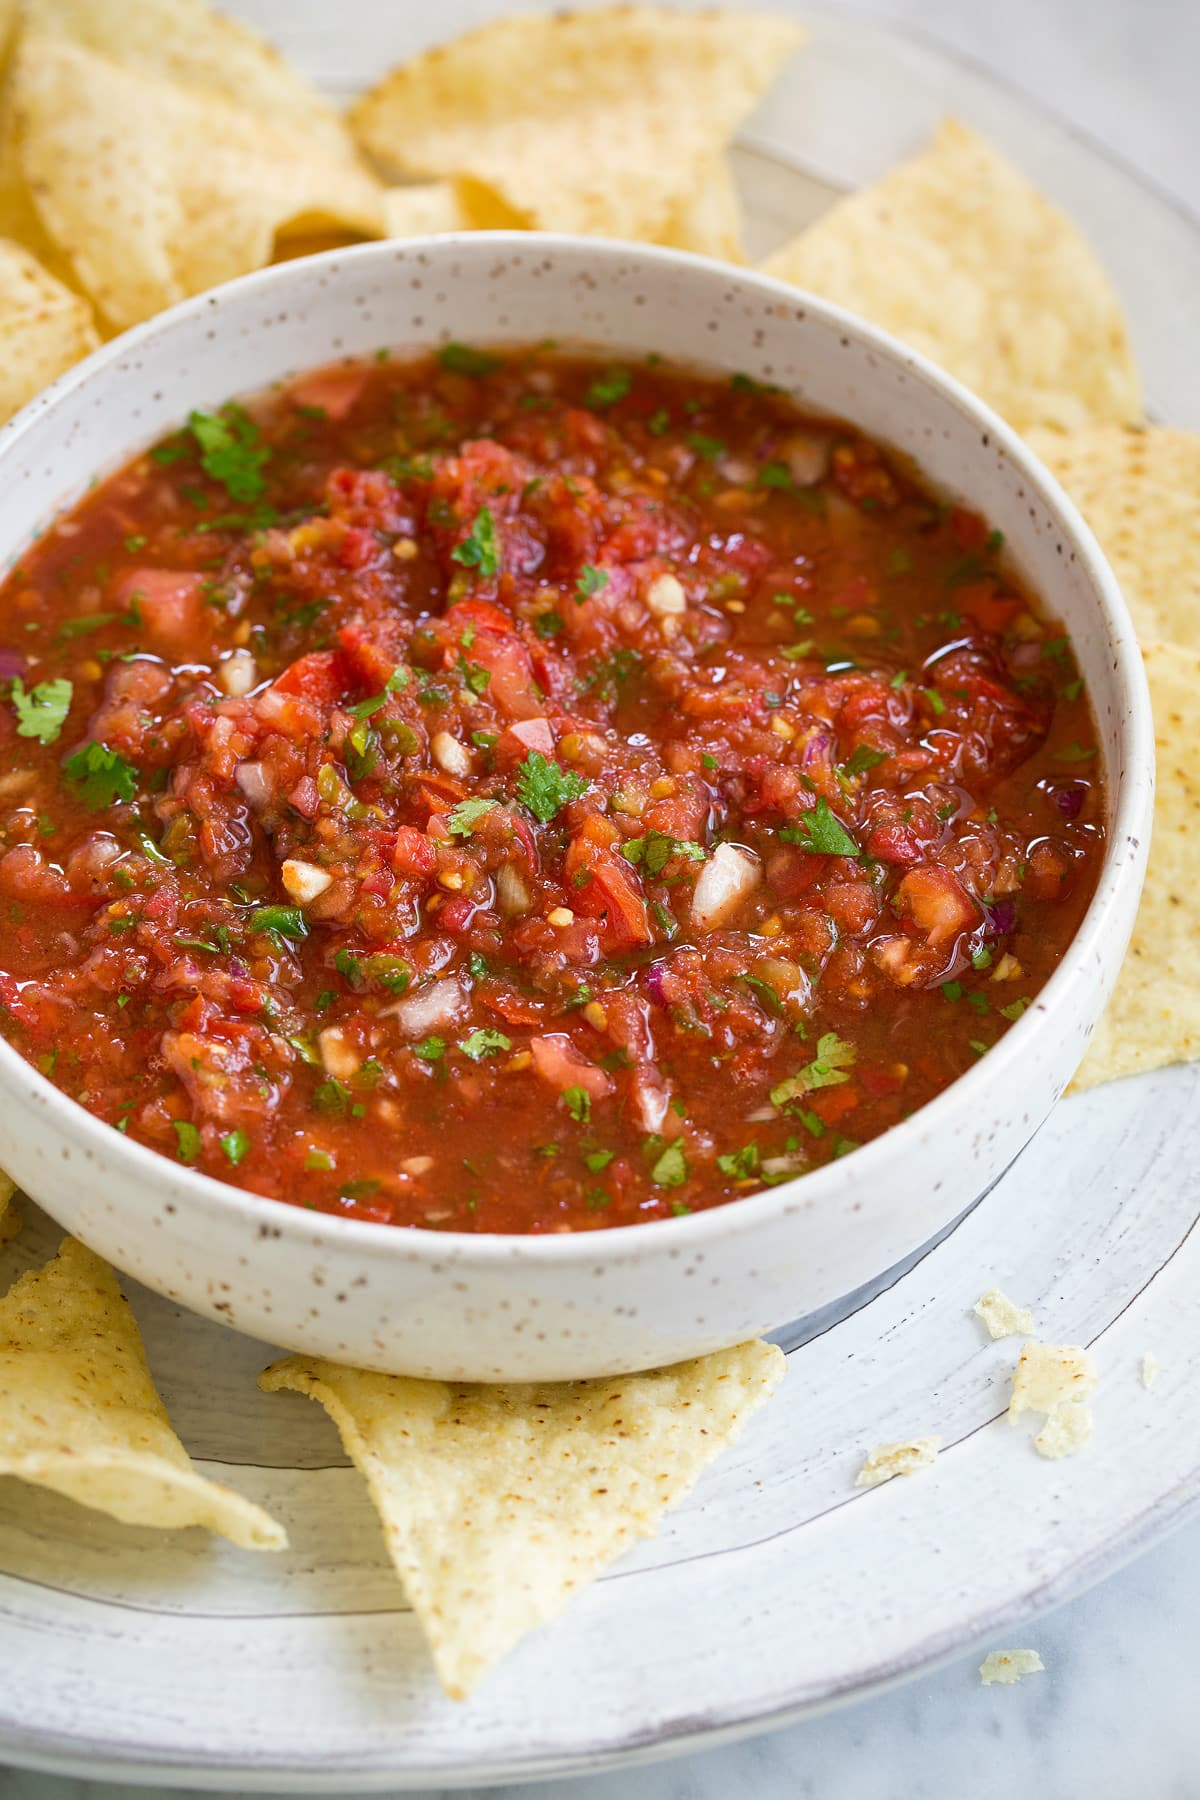 Fresh Homemade Salsa in a bowl next to tortilla chips